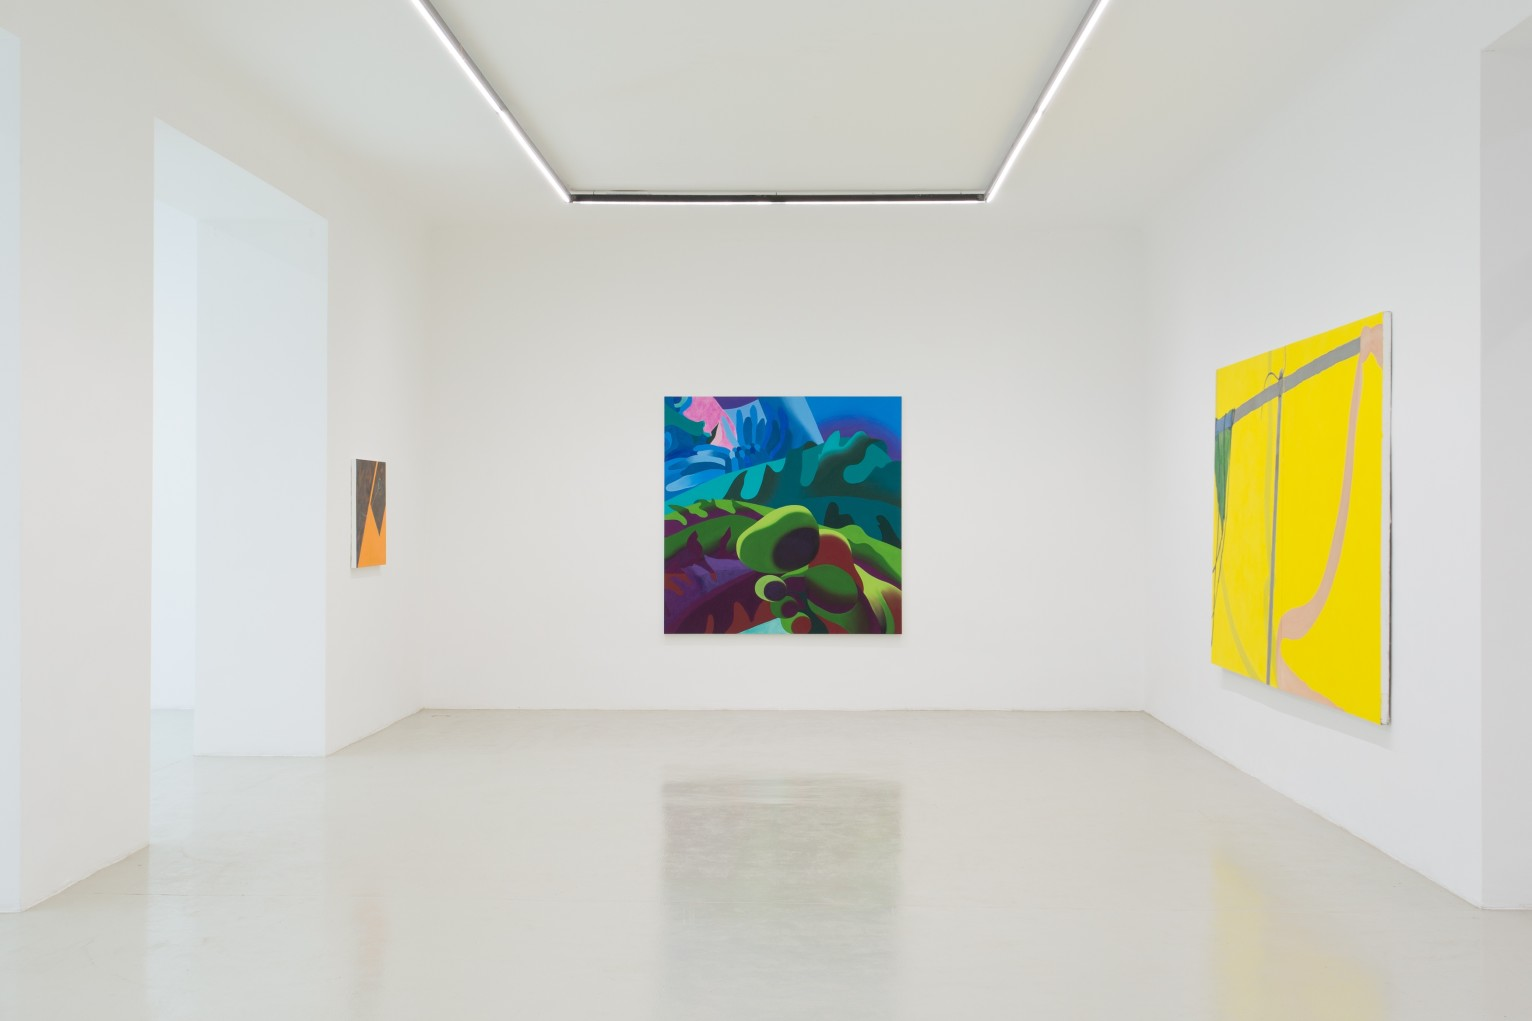 Delphine Hennelly | Kathryn Kerr | Leigh Ruple | Nathalie Shepherd | Faye Wei Wei The Picture Is A Forest 24 May - 29 June 2019